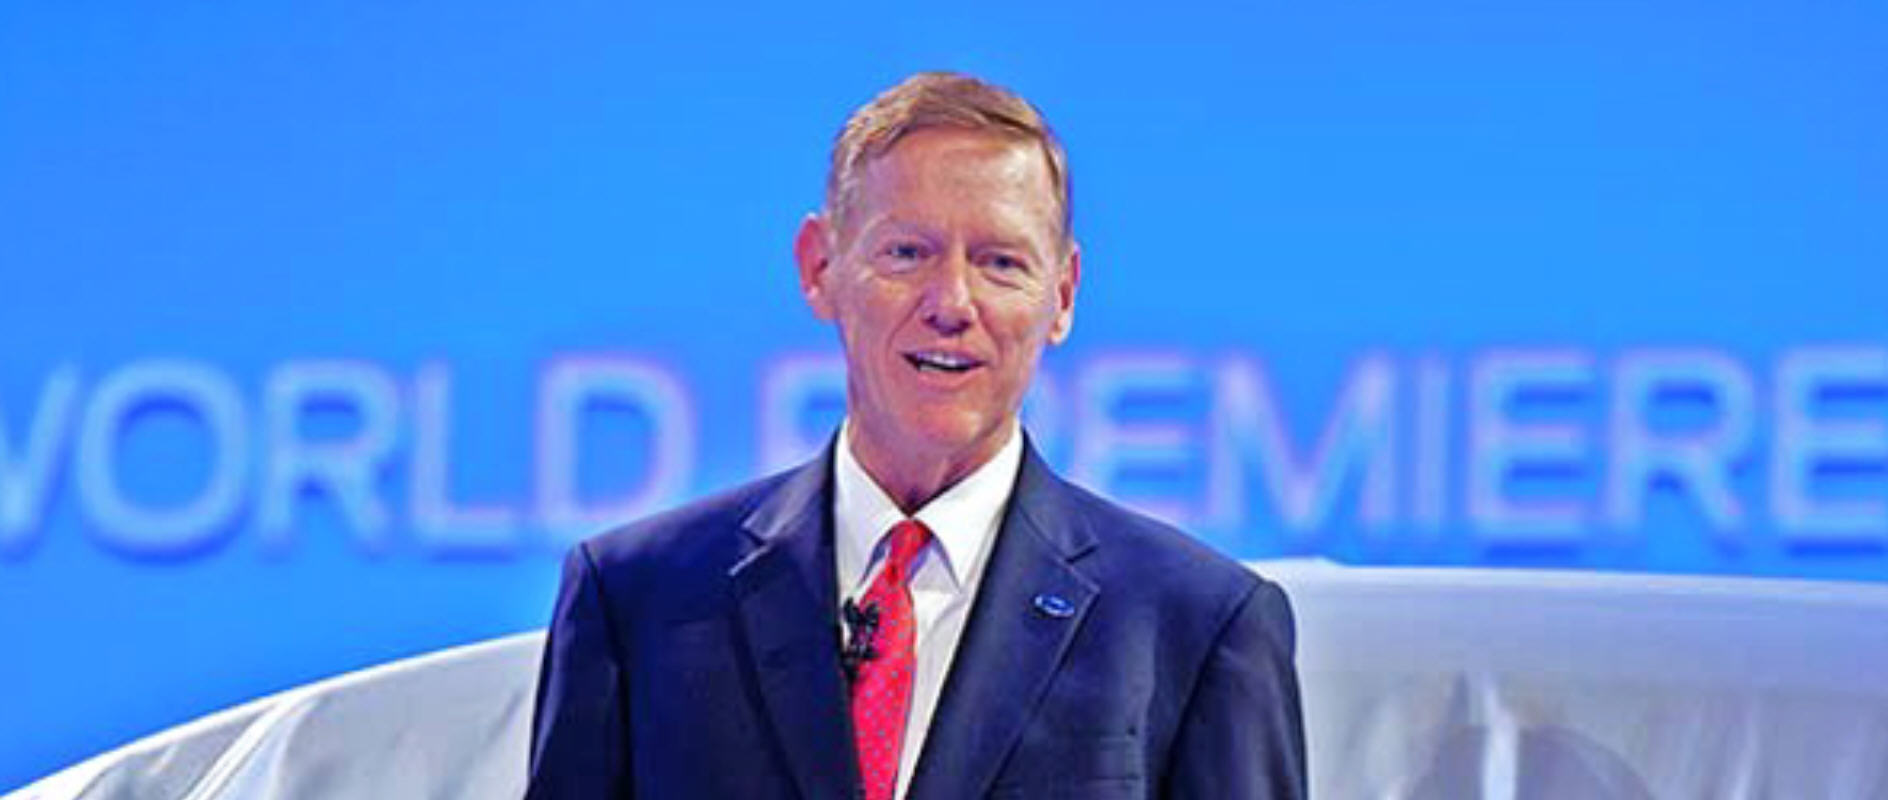 Alan Mulally, Presidente e CEO di Ford Motor Company